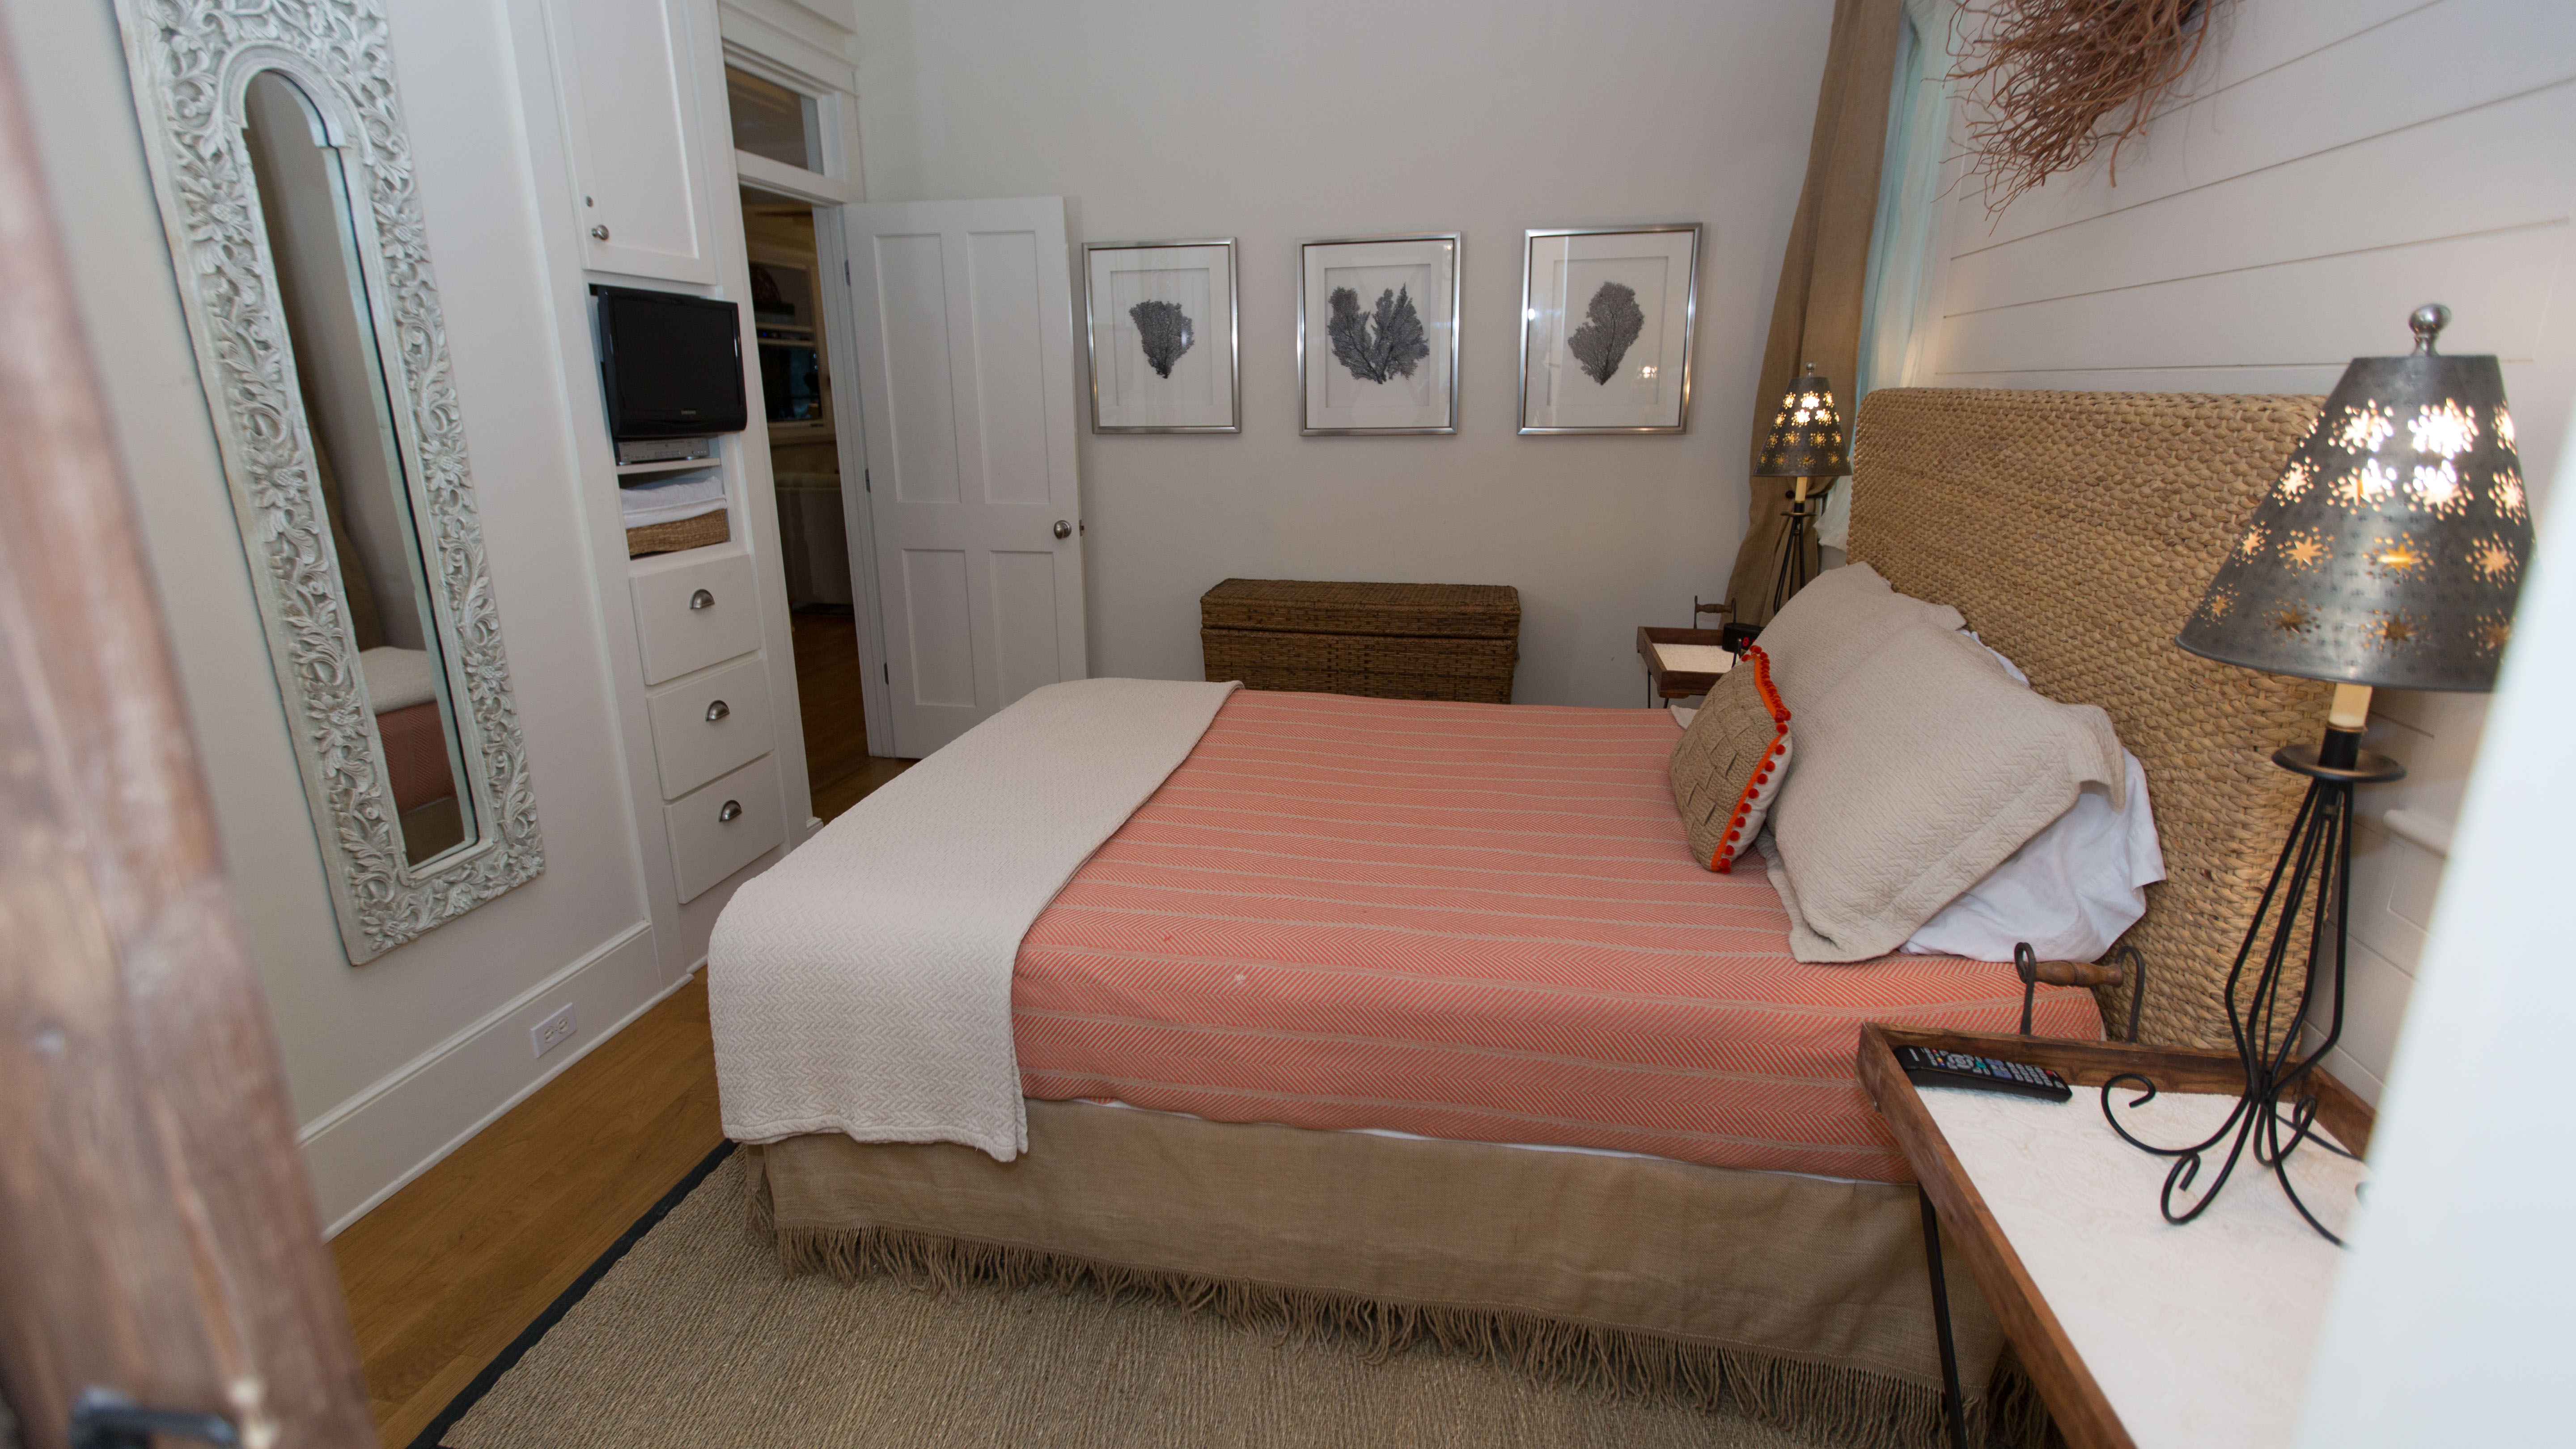 Queen bed, television and plenty of space